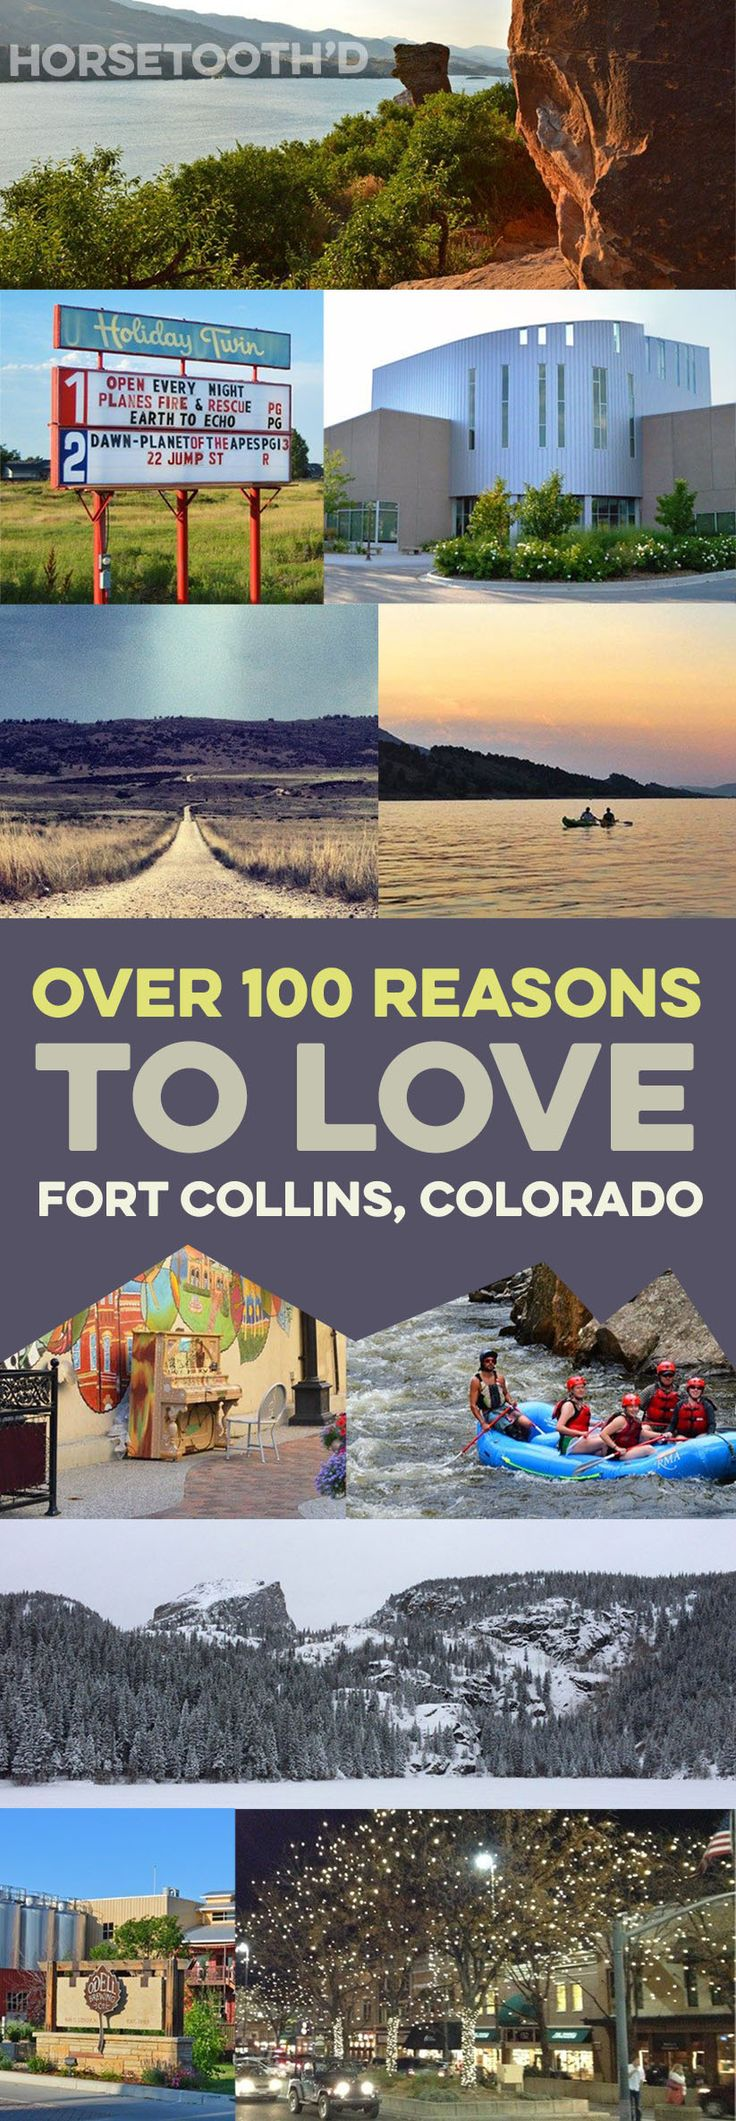 Over 100 Reasons to Love Fort Collins Colorado